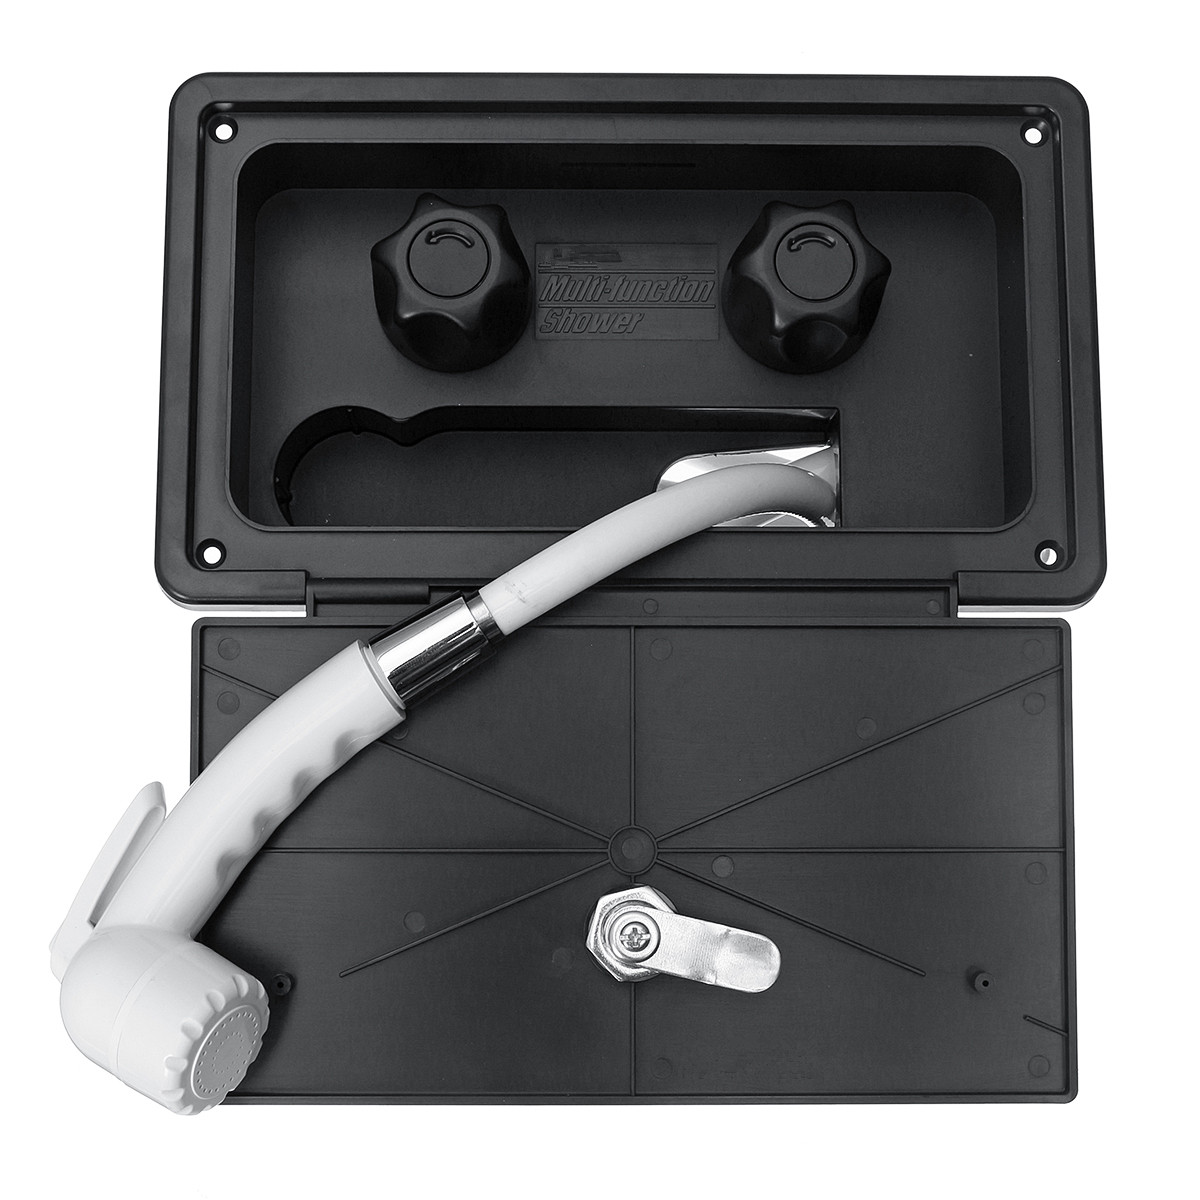 Xueqin Portable RV Exterior Shower Box Kit Shower Faucet Lock-Includes Hot Cold Water Mi ...